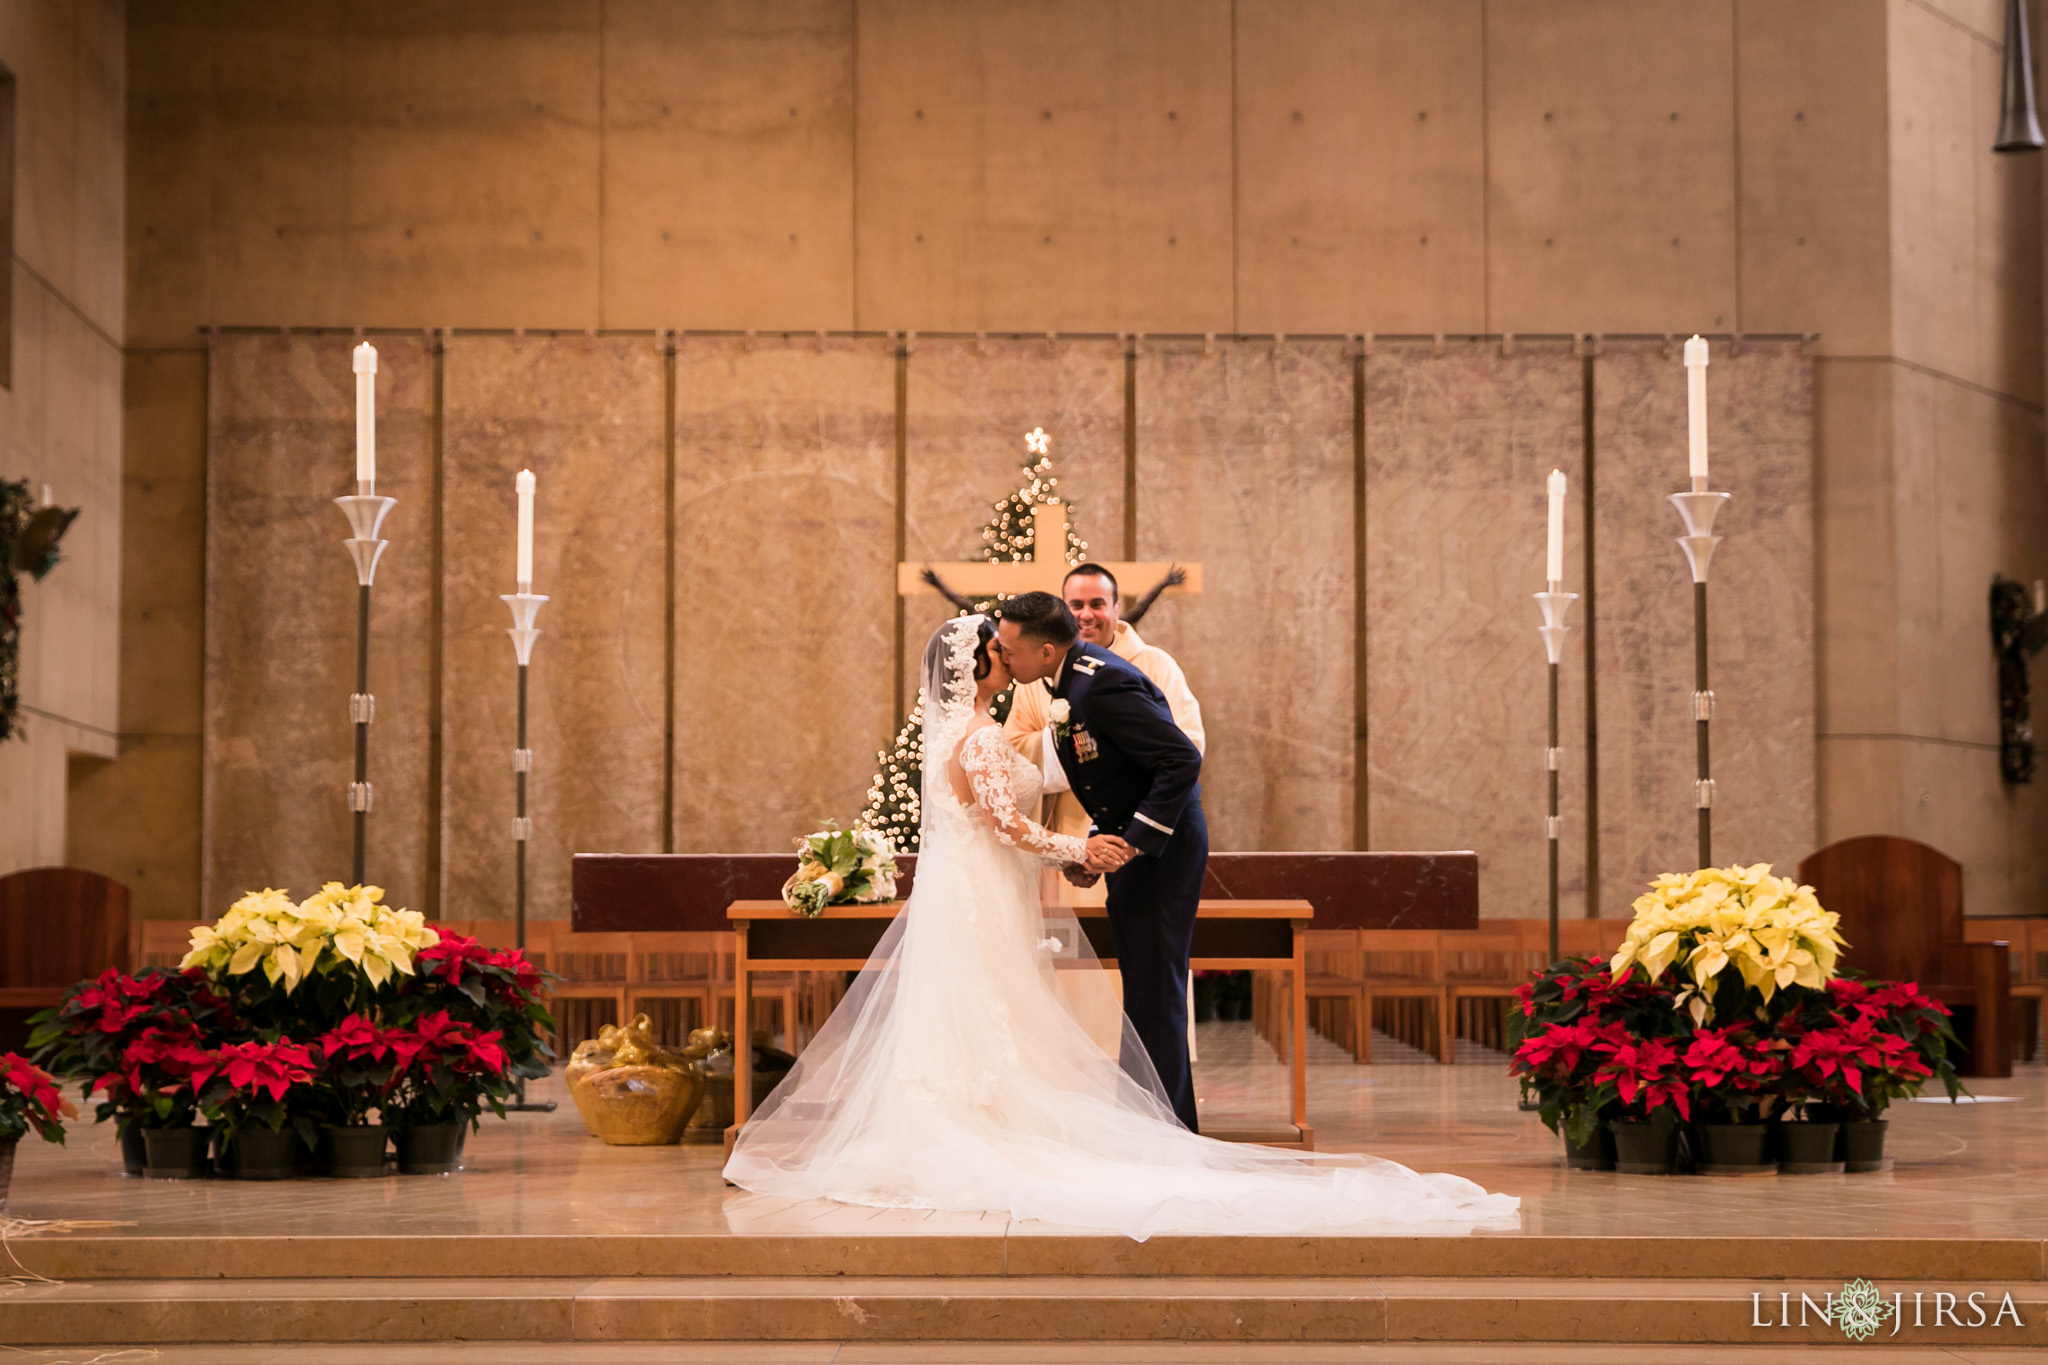 23 cathedral of our lady of angels wedding ceremony photography